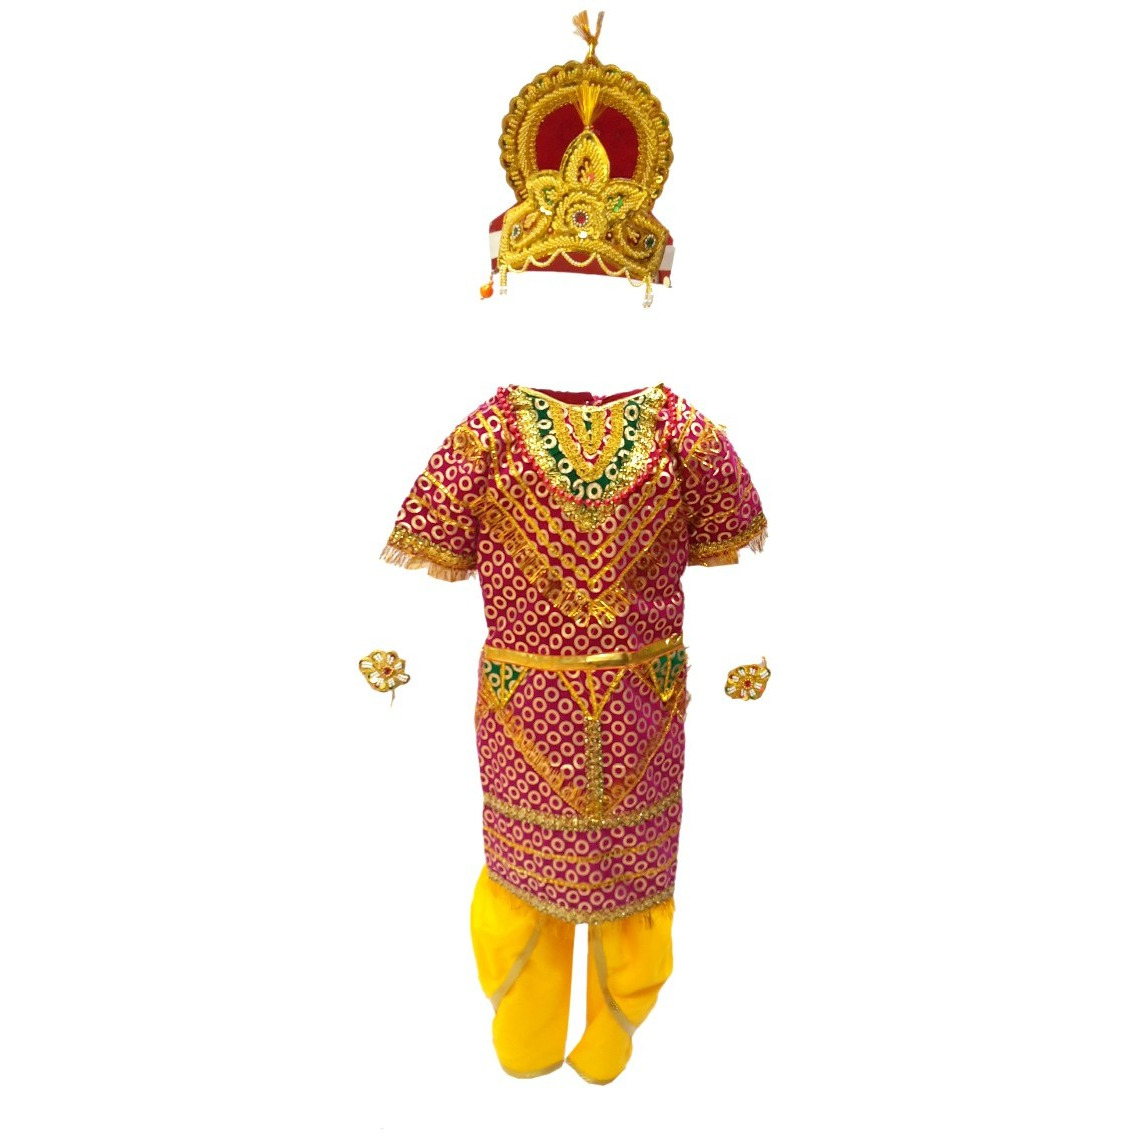 b3a57eca2c Buy Online KFD Meghnath fancy dress for kids,Ramleela/Dussehra/Mythological  Character for Annual function/Theme Party/Competition/Stage Shows Dress  from USA ...